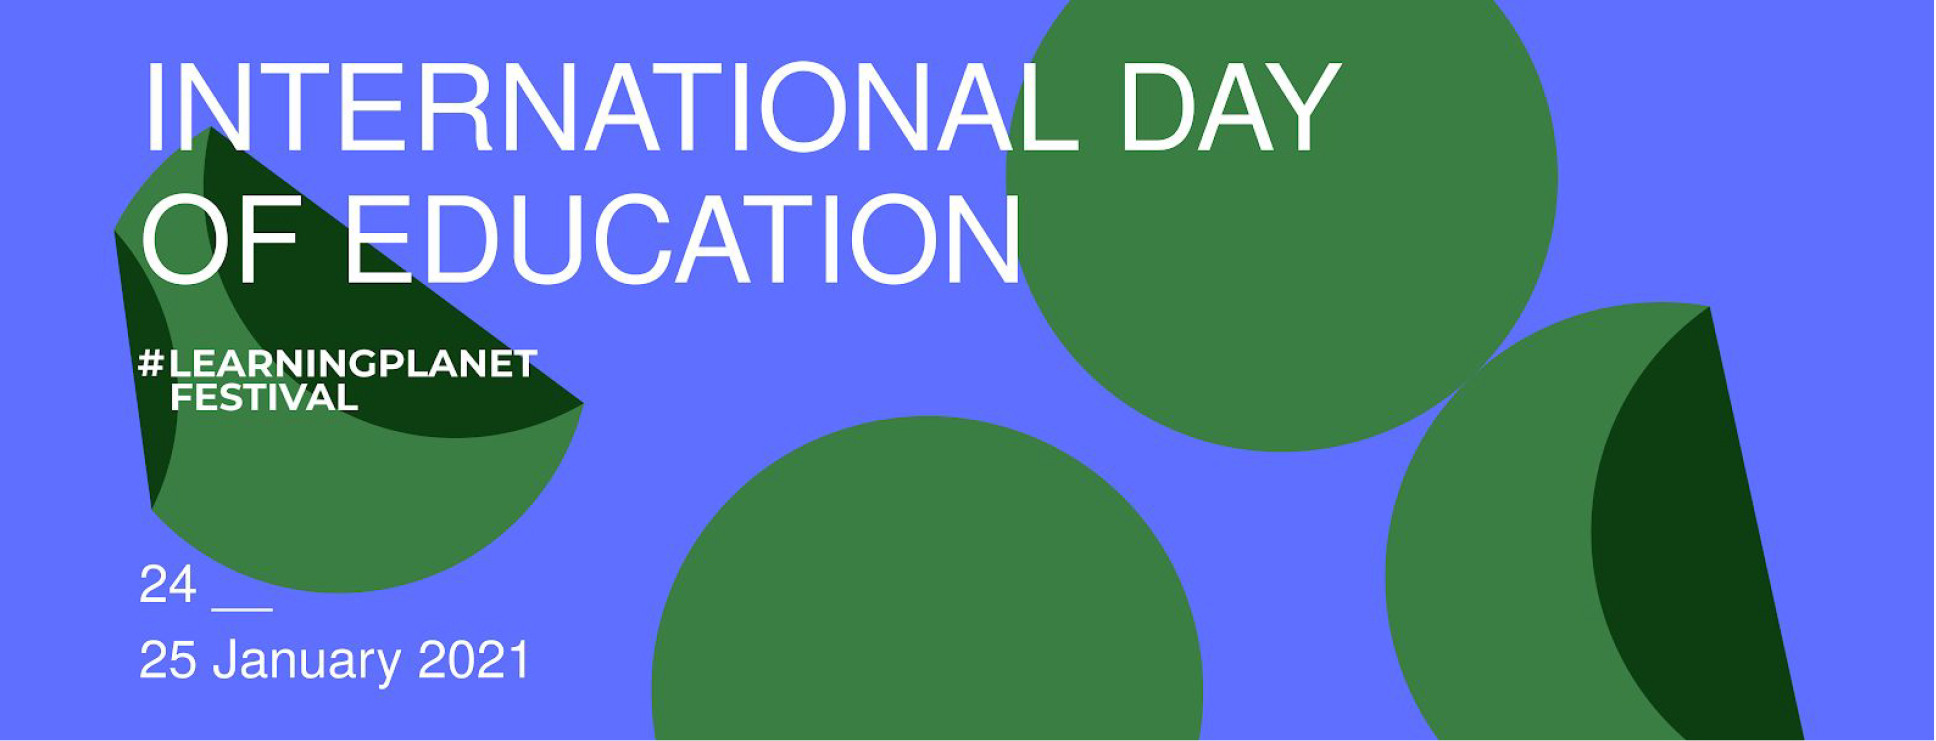 cri,-unesco-and-+150-partners-to-host-a-global-online-festival-for-international-day-of-education